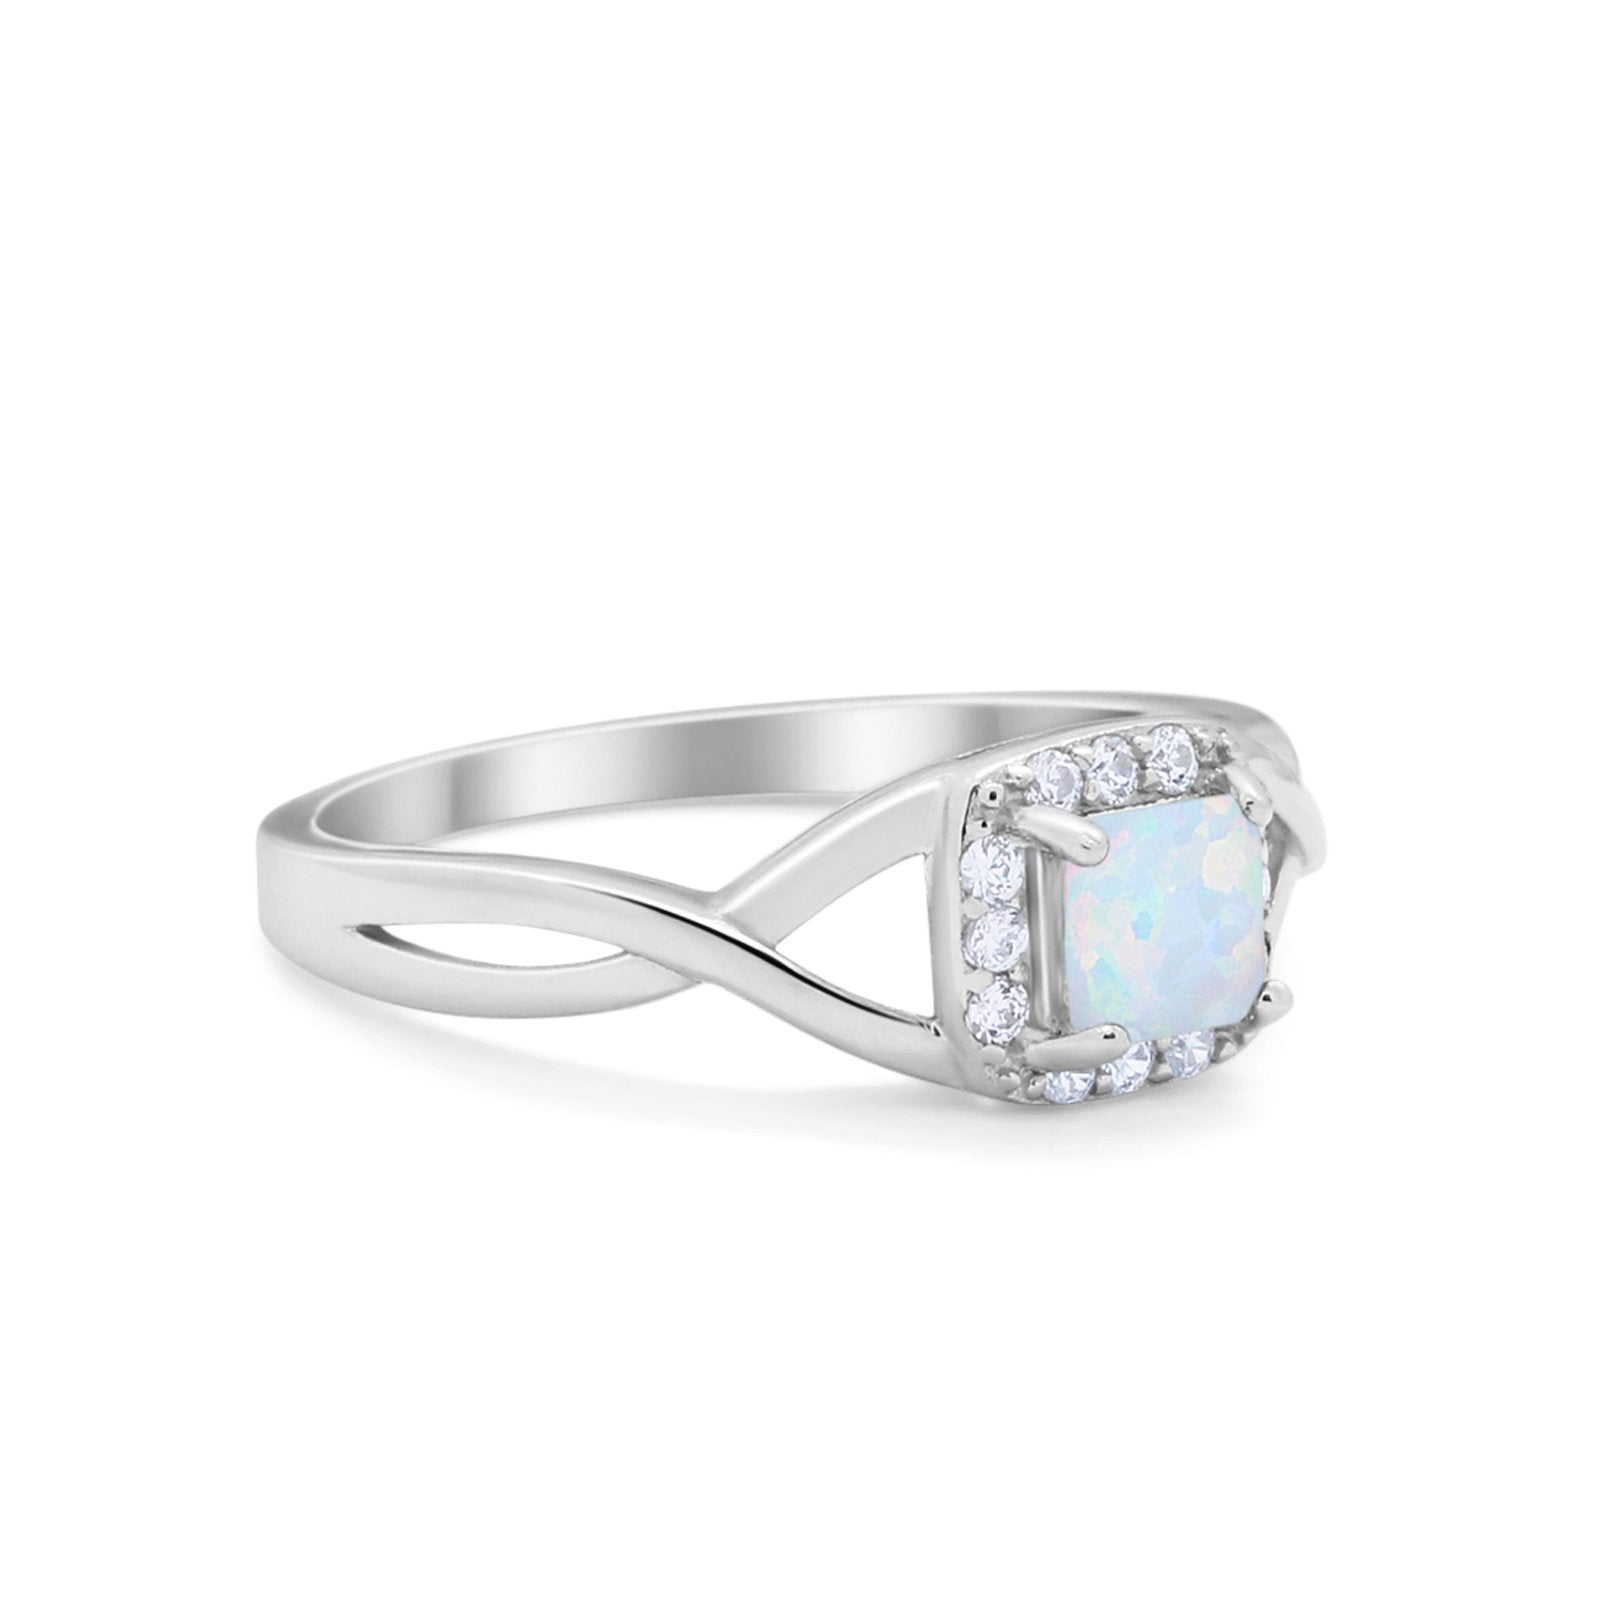 Solitaire Infinity Shank Ring Princess Cut Lab Created White Opal 925 Sterling Silver